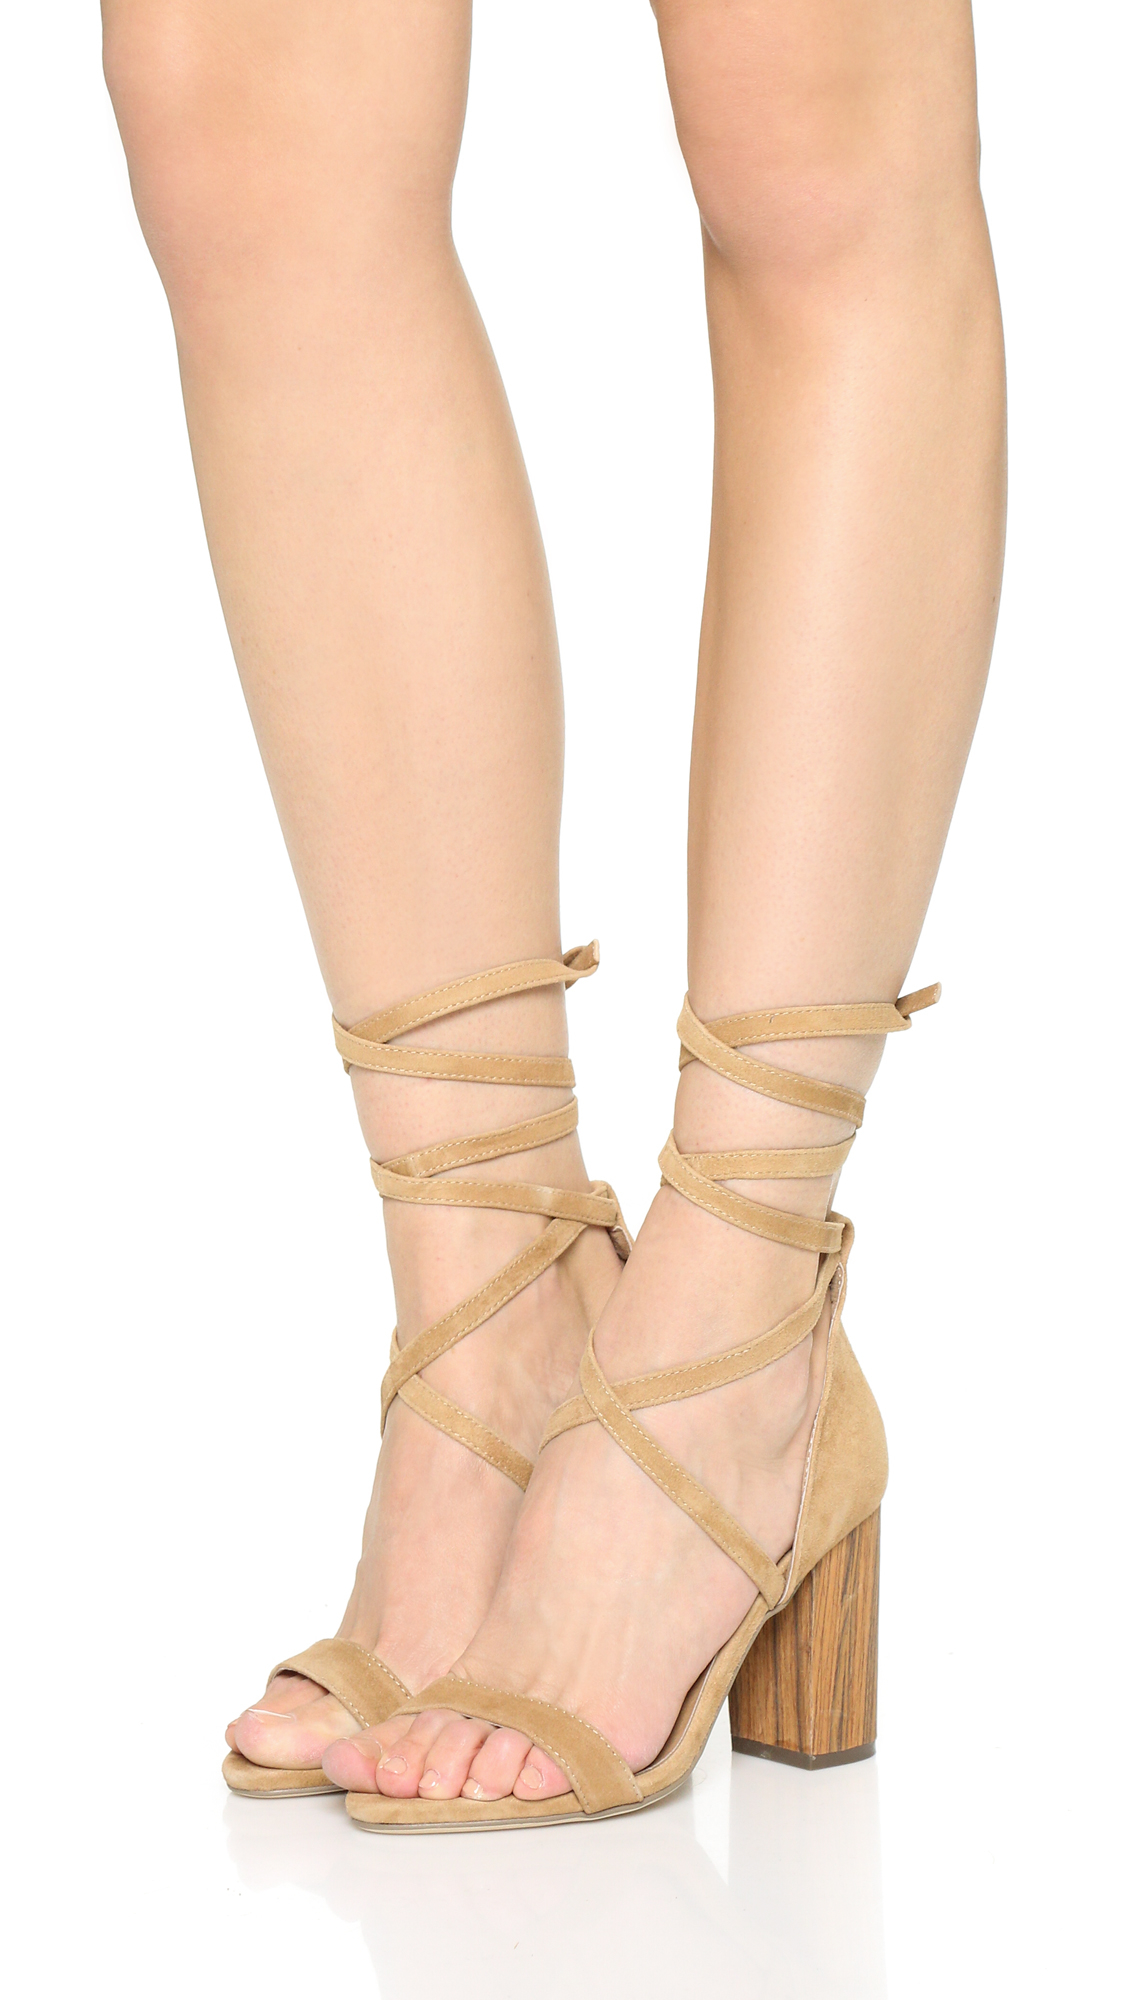 8b8804a8674d Lyst - RAYE Layla Lace Up Sandals in Natural